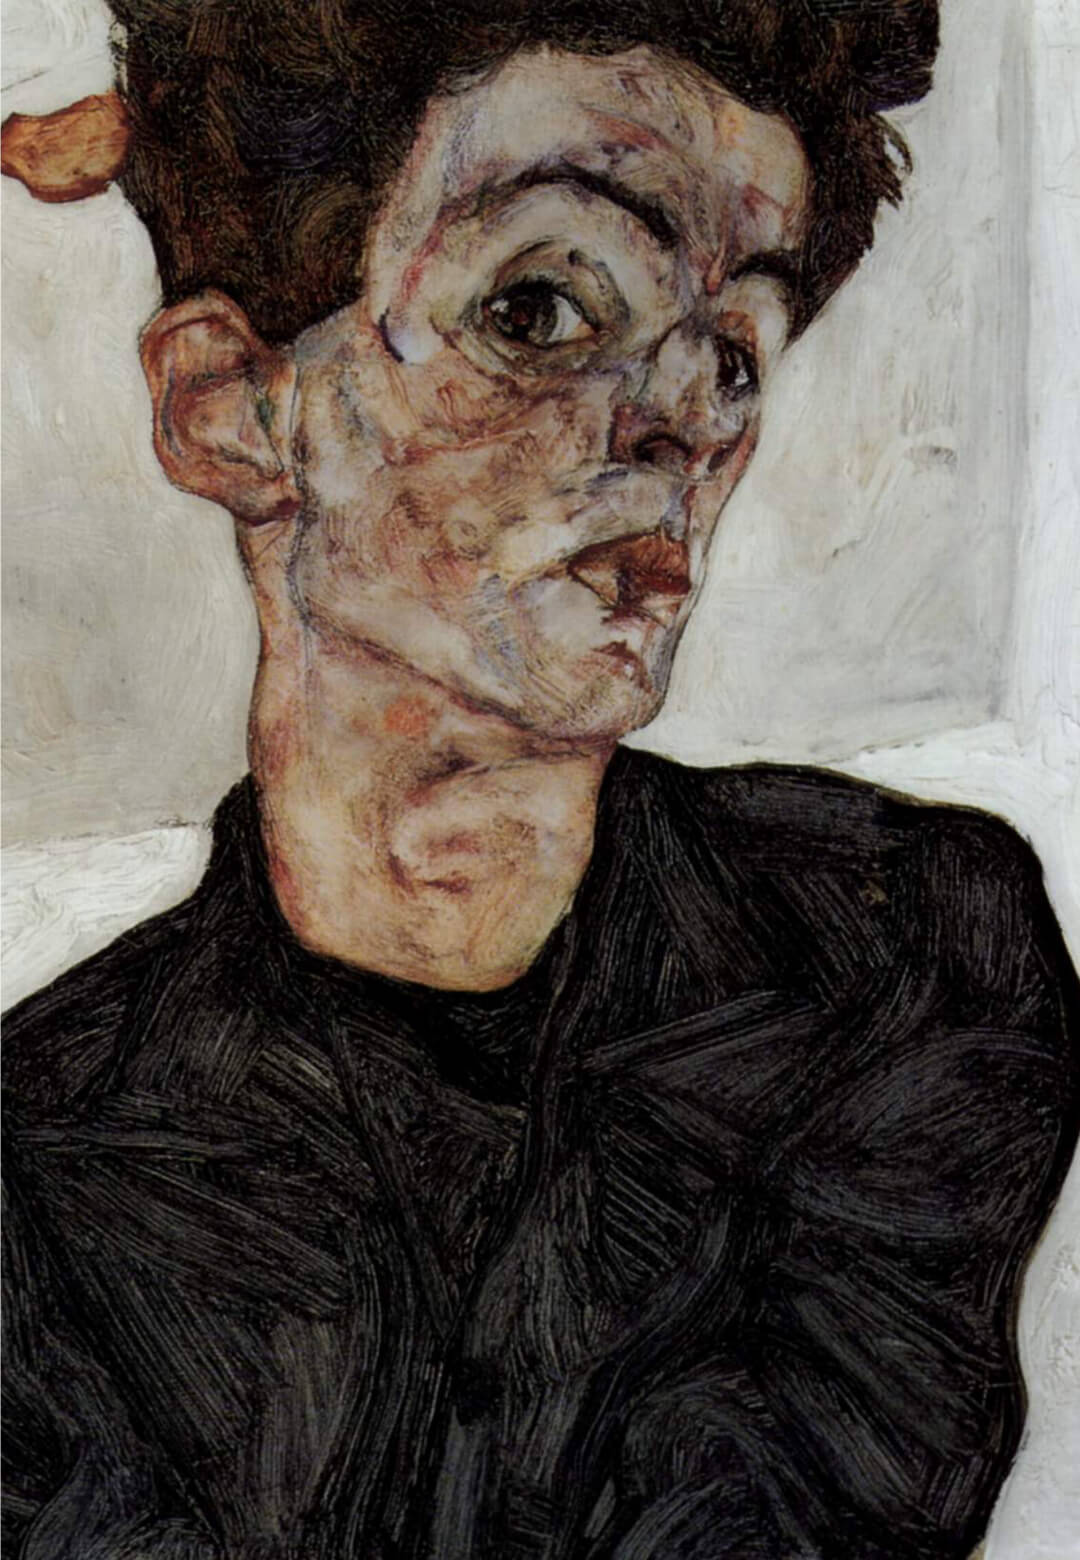 A self-portrait by Egon Schiele | Egon Schiele| STIRworld